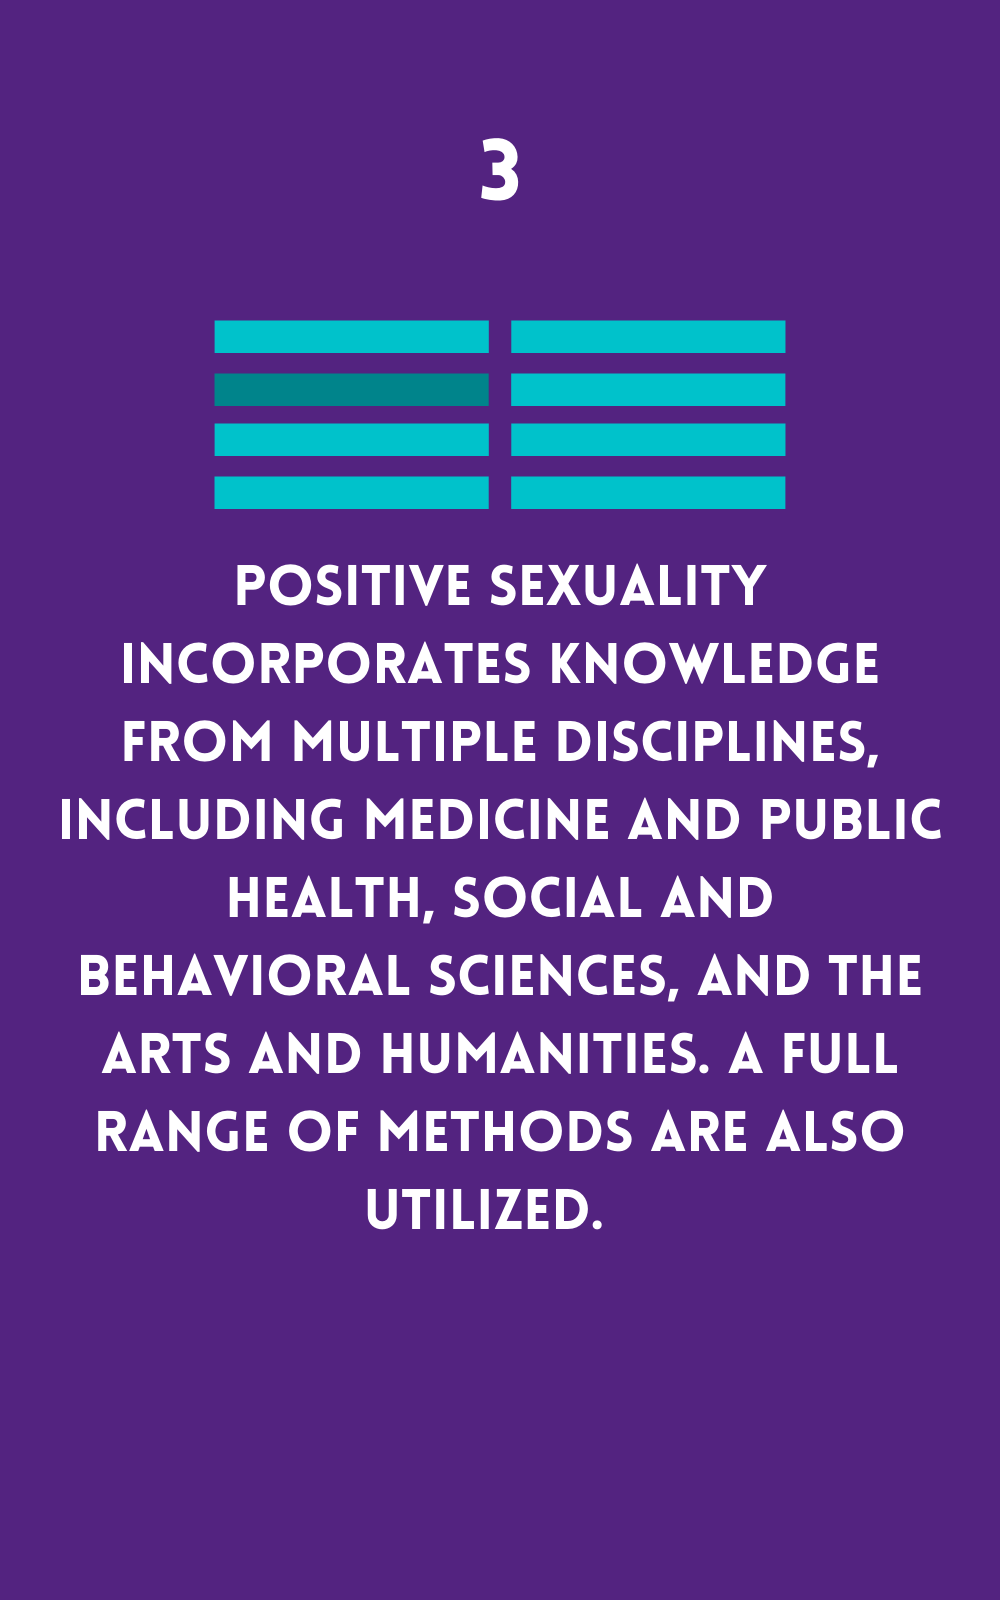 Positive sexuality supports knowledge from many sources